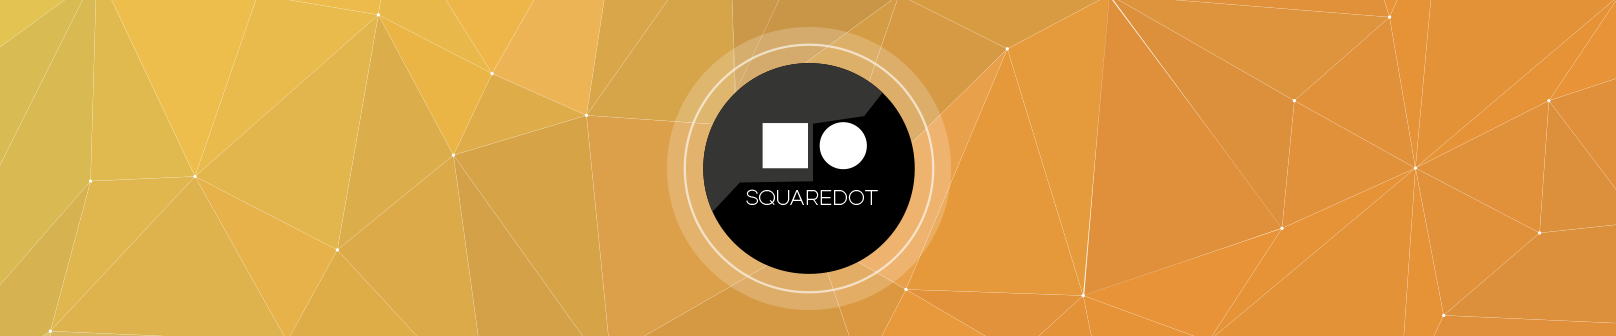 Squaredot B2B Content Marketing